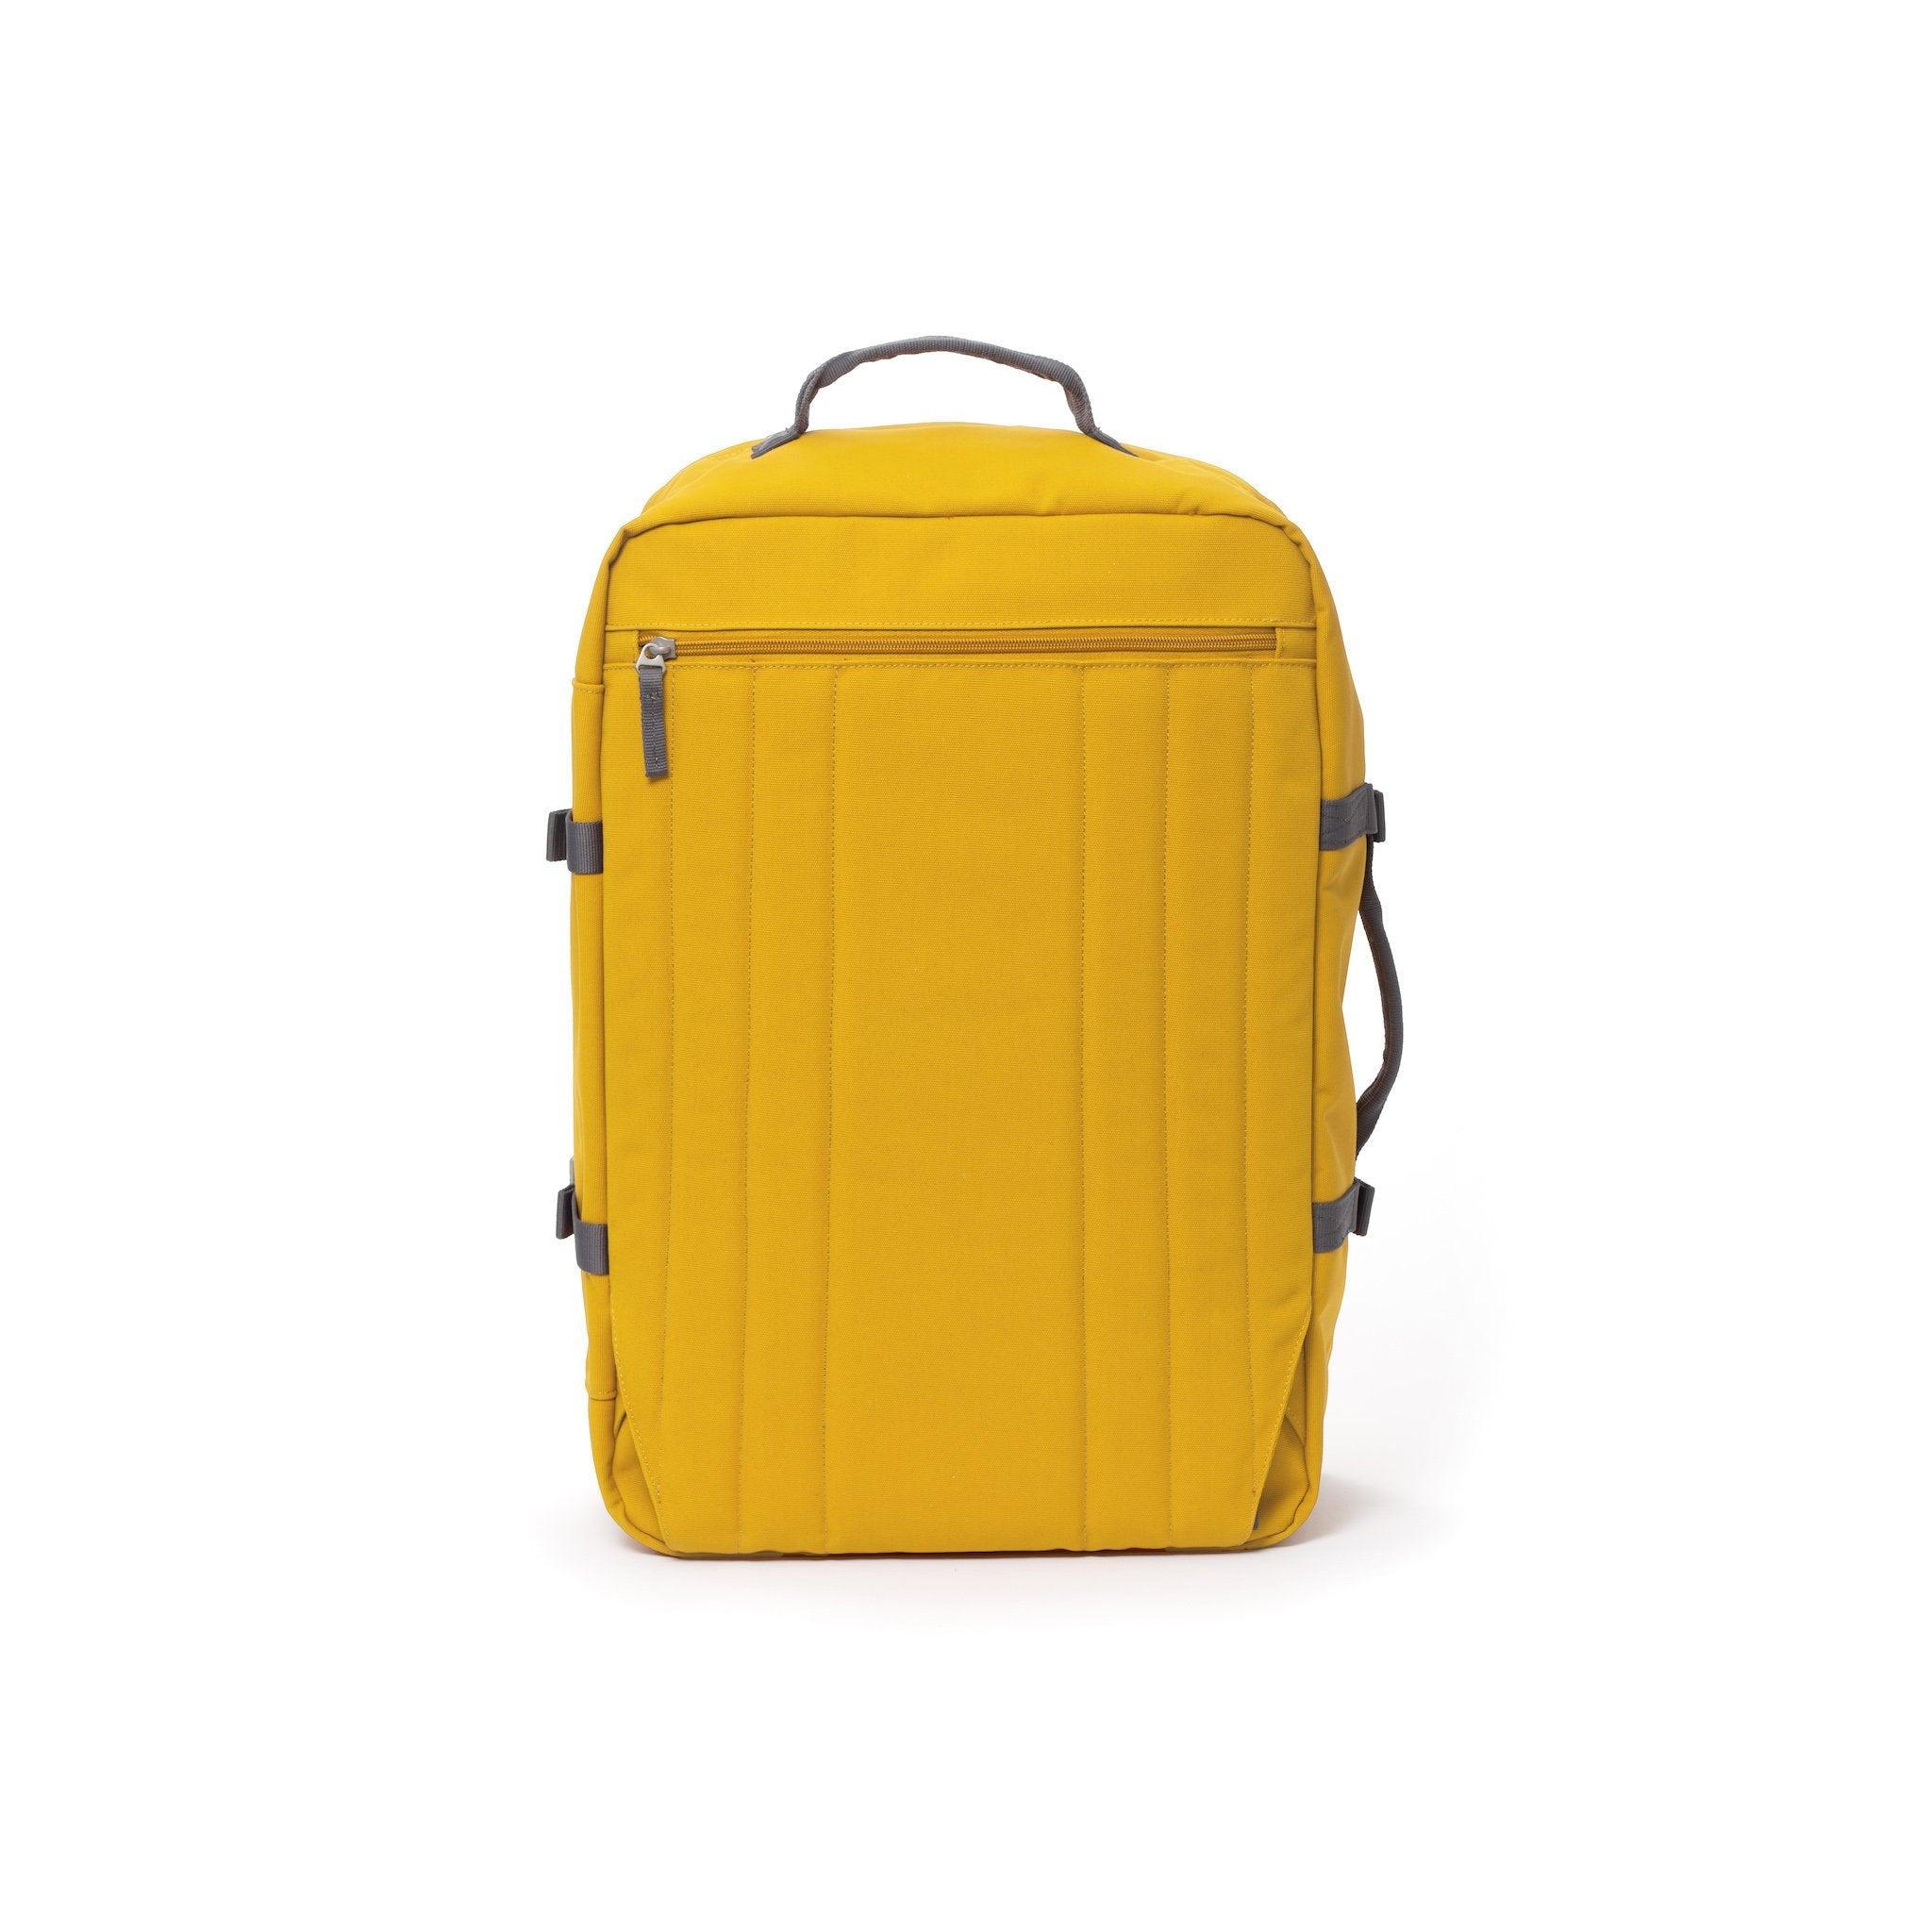 Yellow travel backpack with hidden shoulder straps.